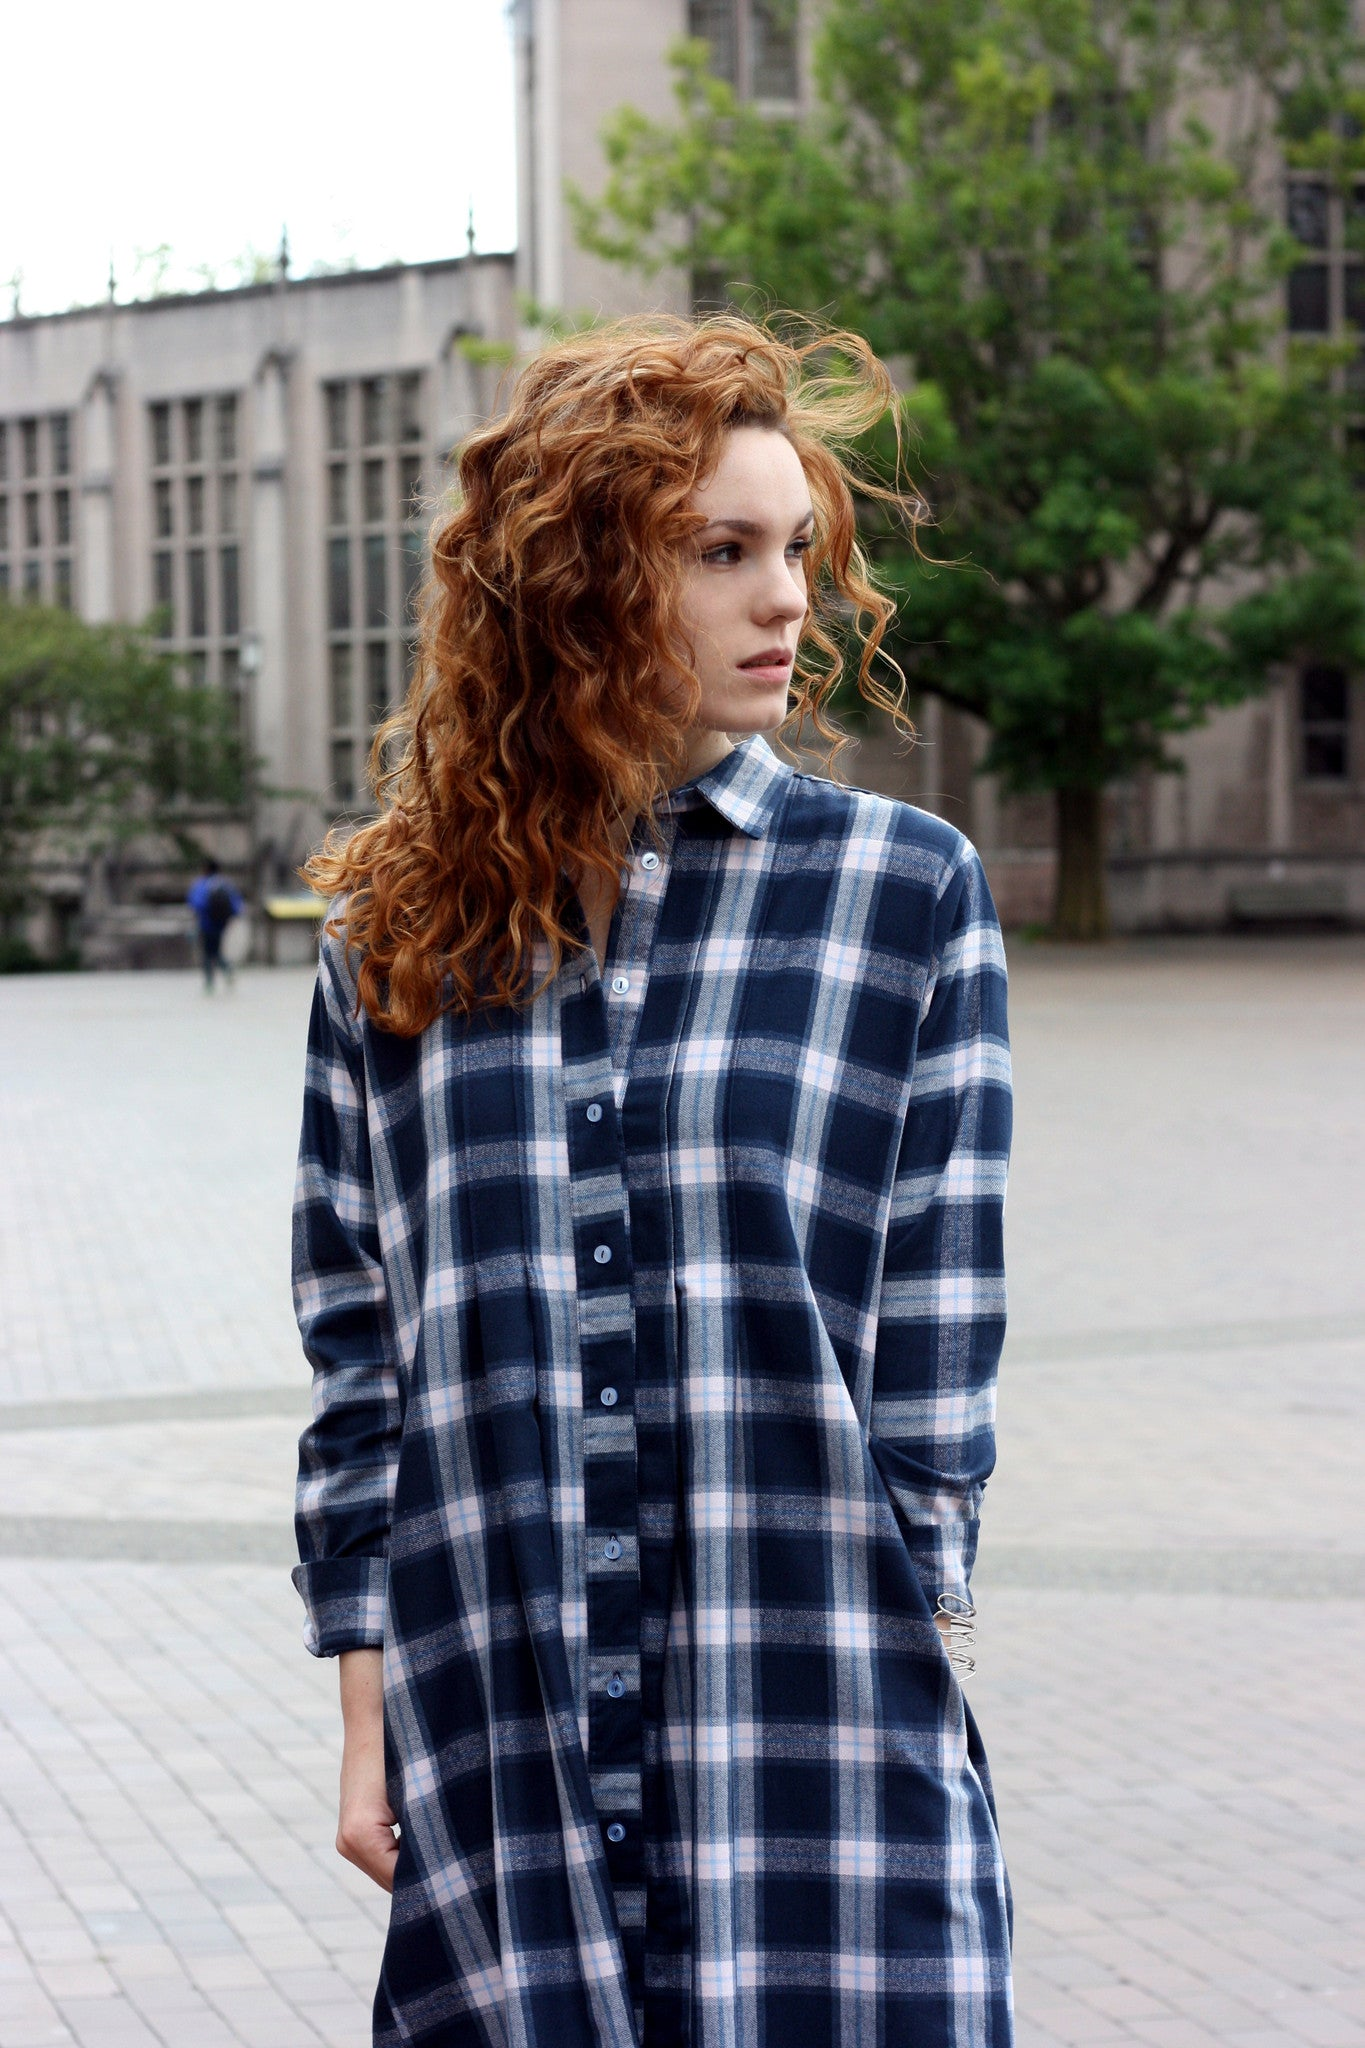 Small batch casual chic clothing sustainably handmade for every woman. Plaid Flannel Shirt Dress.